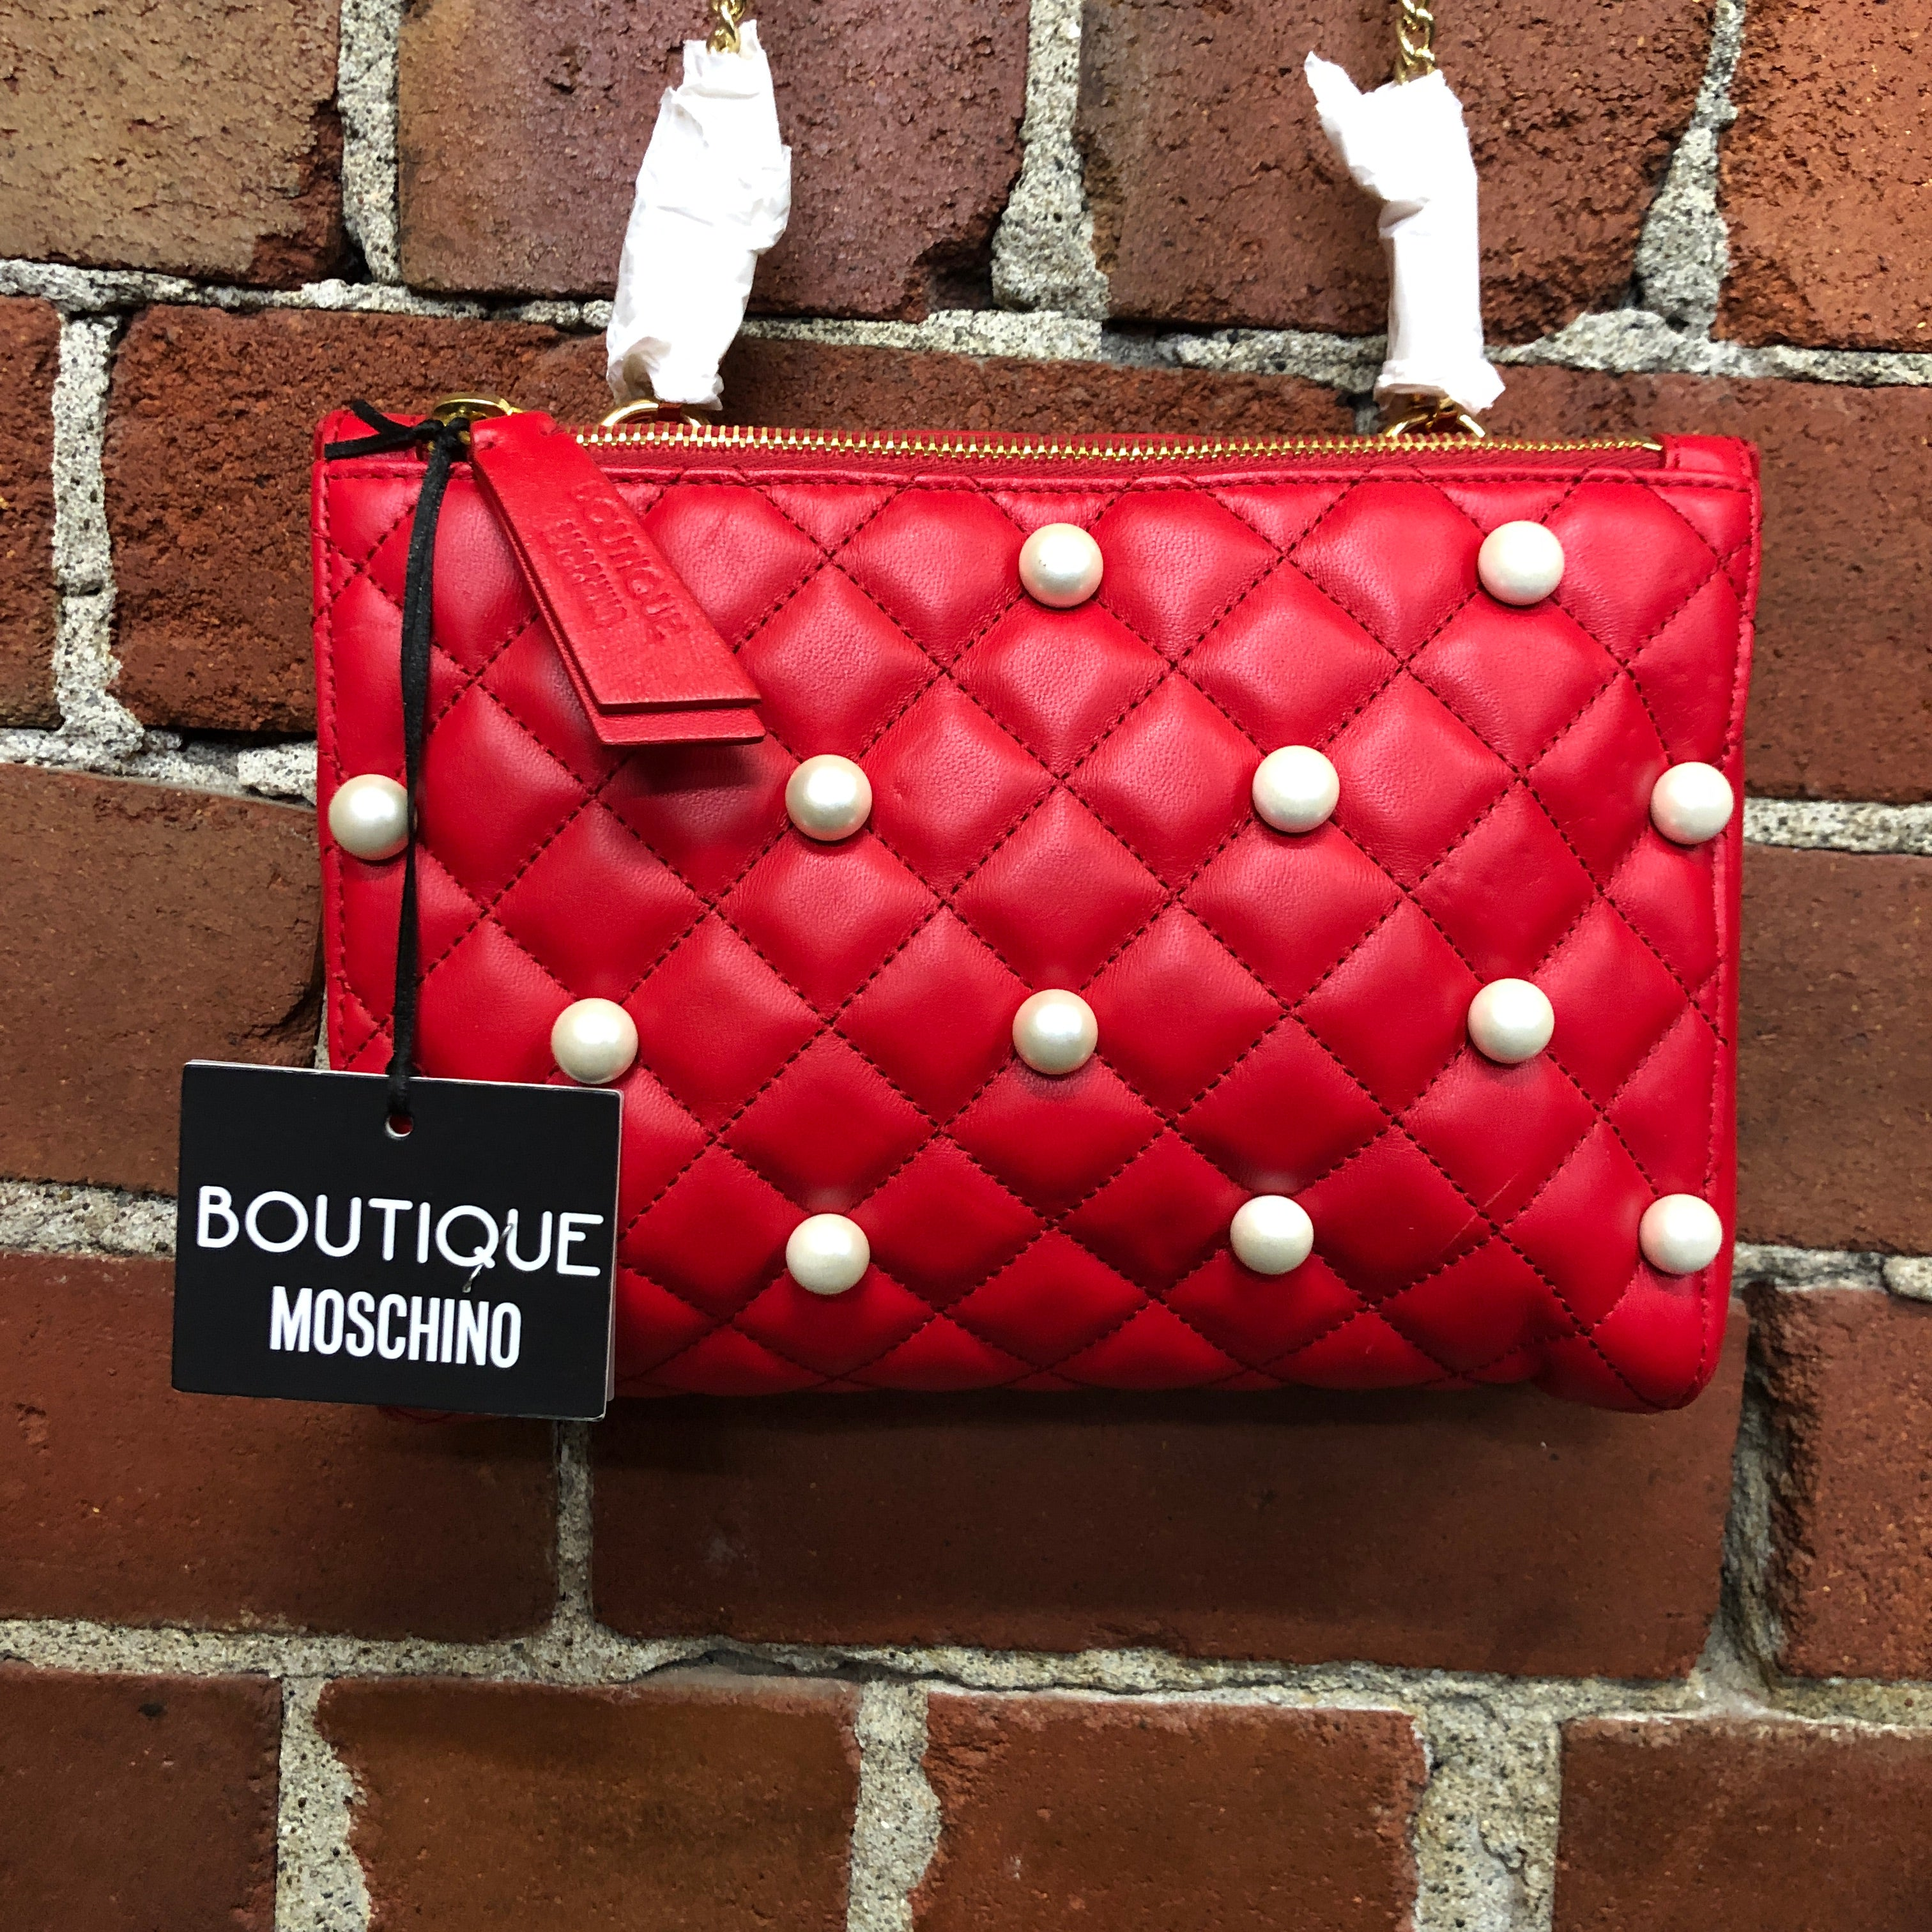 MOSCHINO BOUTIQUE NEW leather and pearl quilted handbag